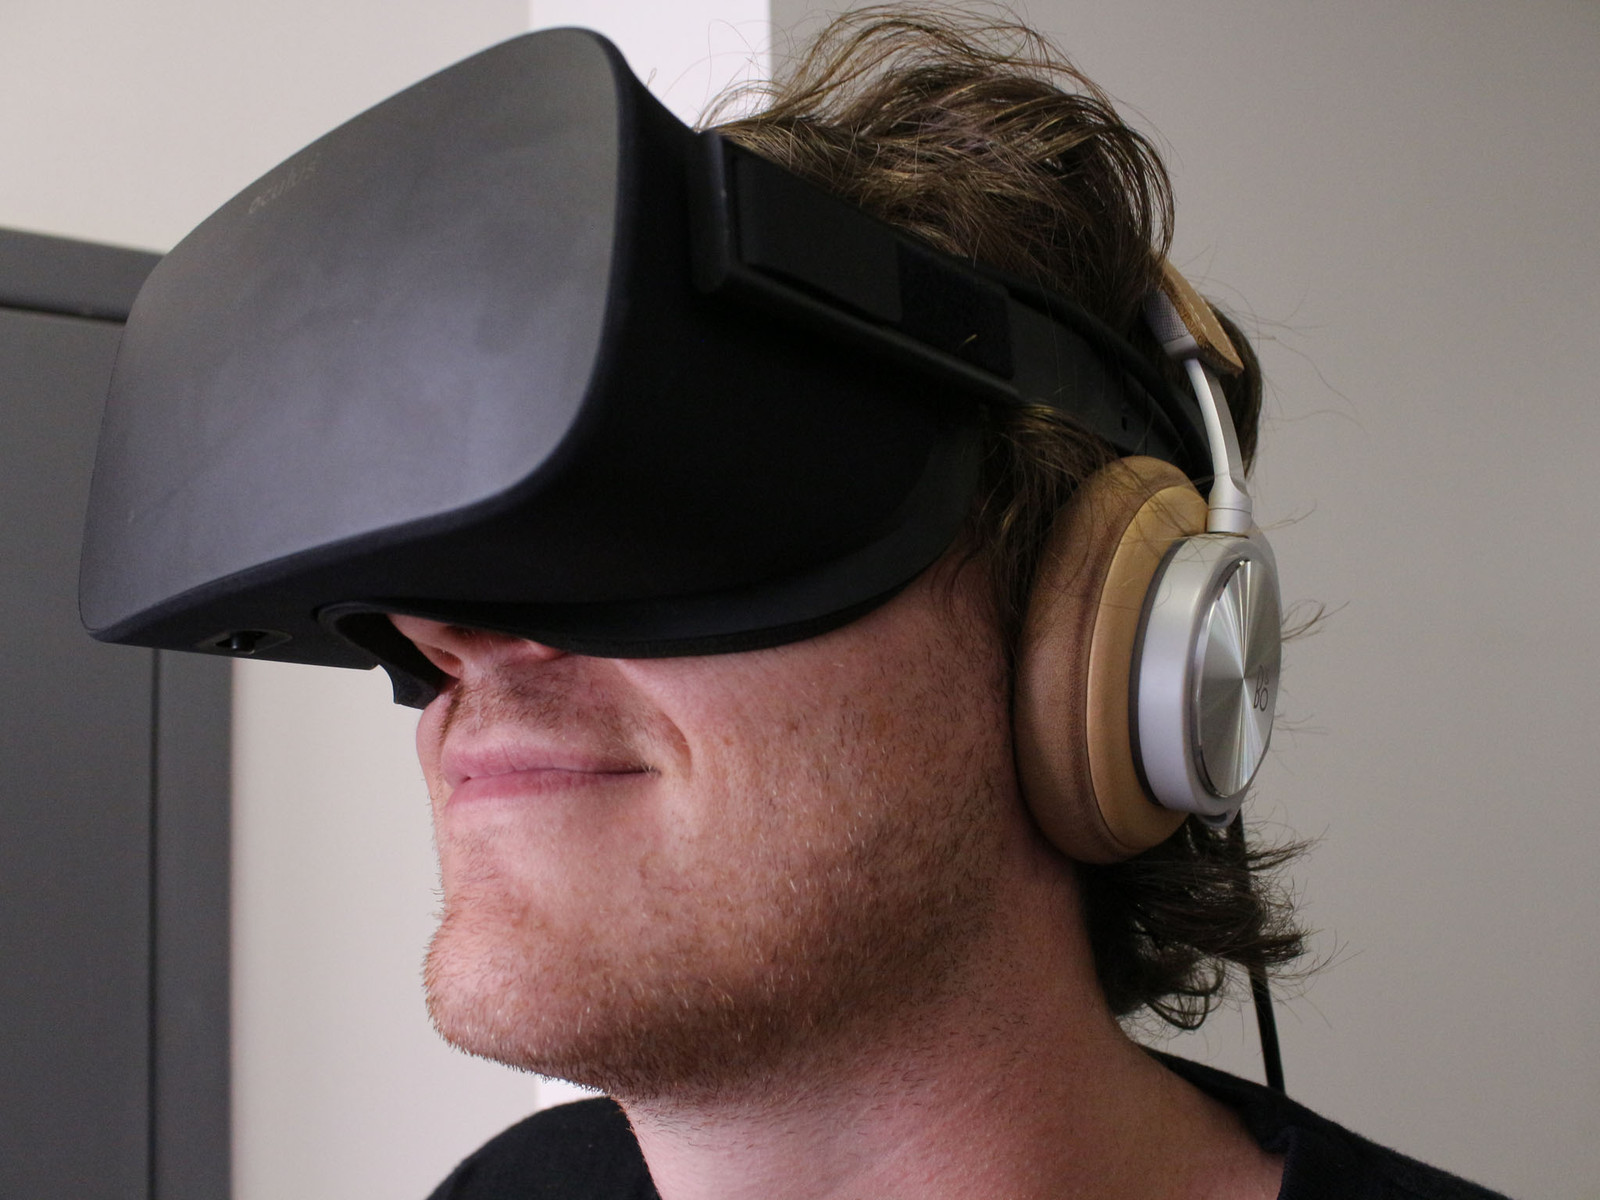 How to remove the built-in Oculus Rift headphones